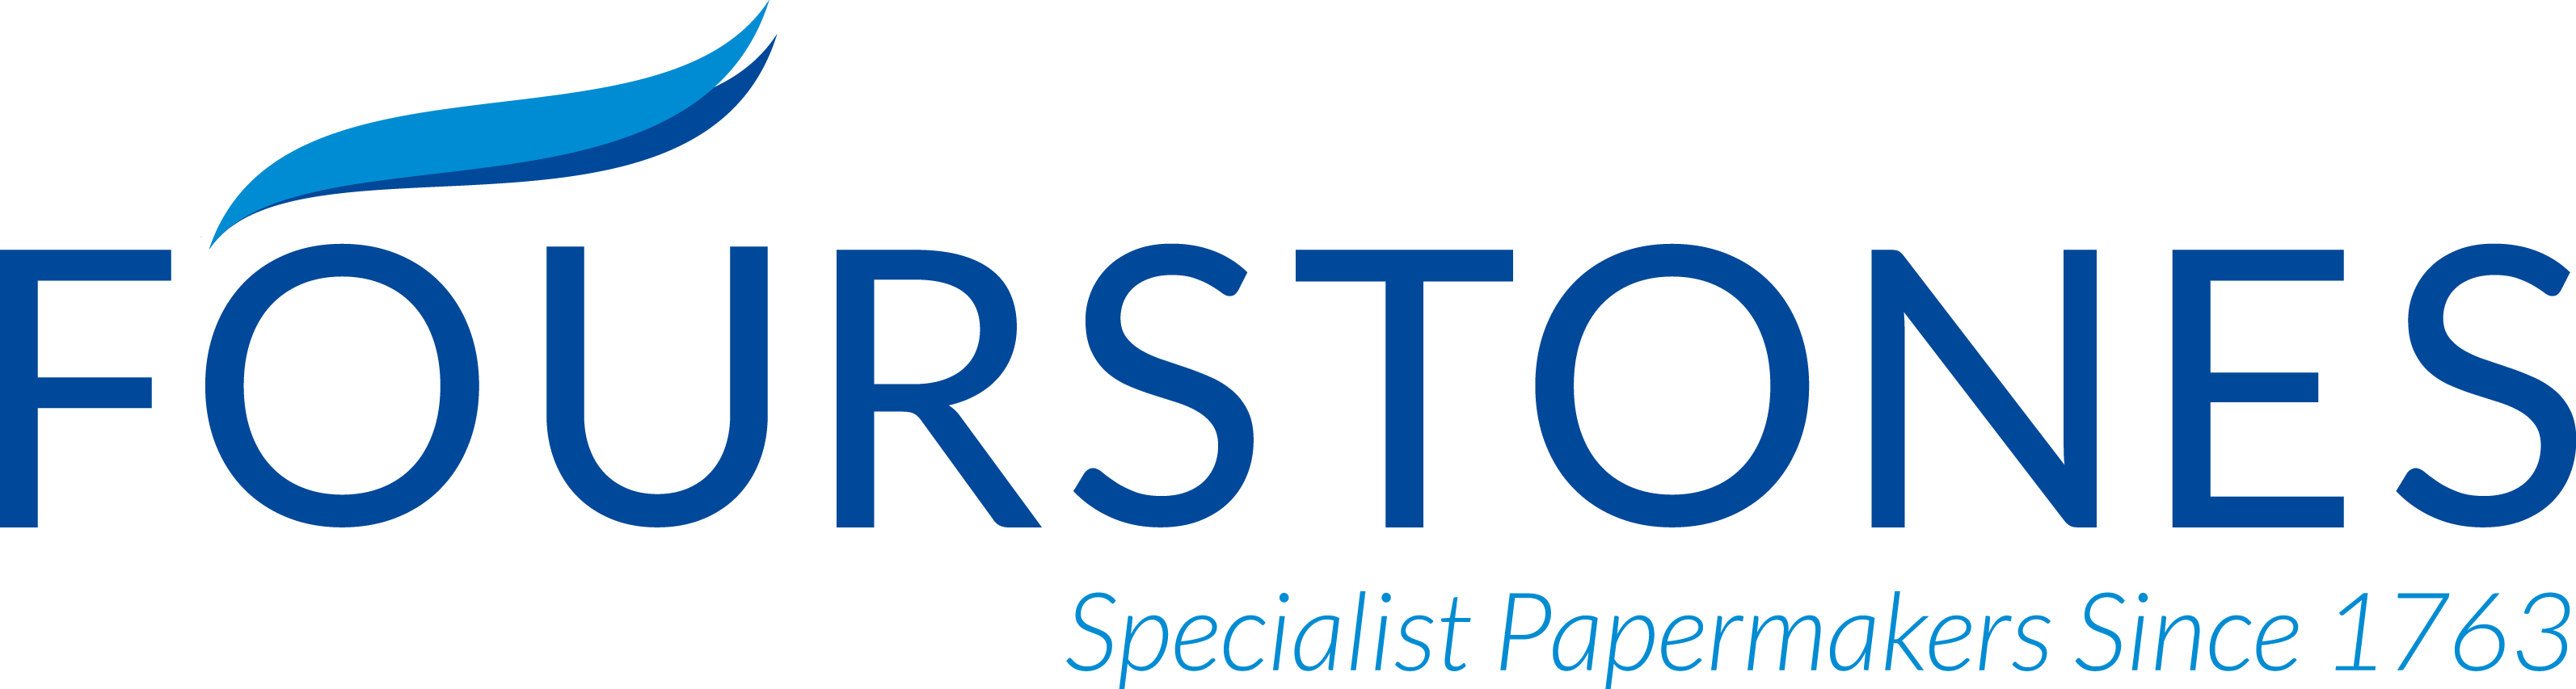 Fourstones | UK Manufacturer of Quality Paper Products